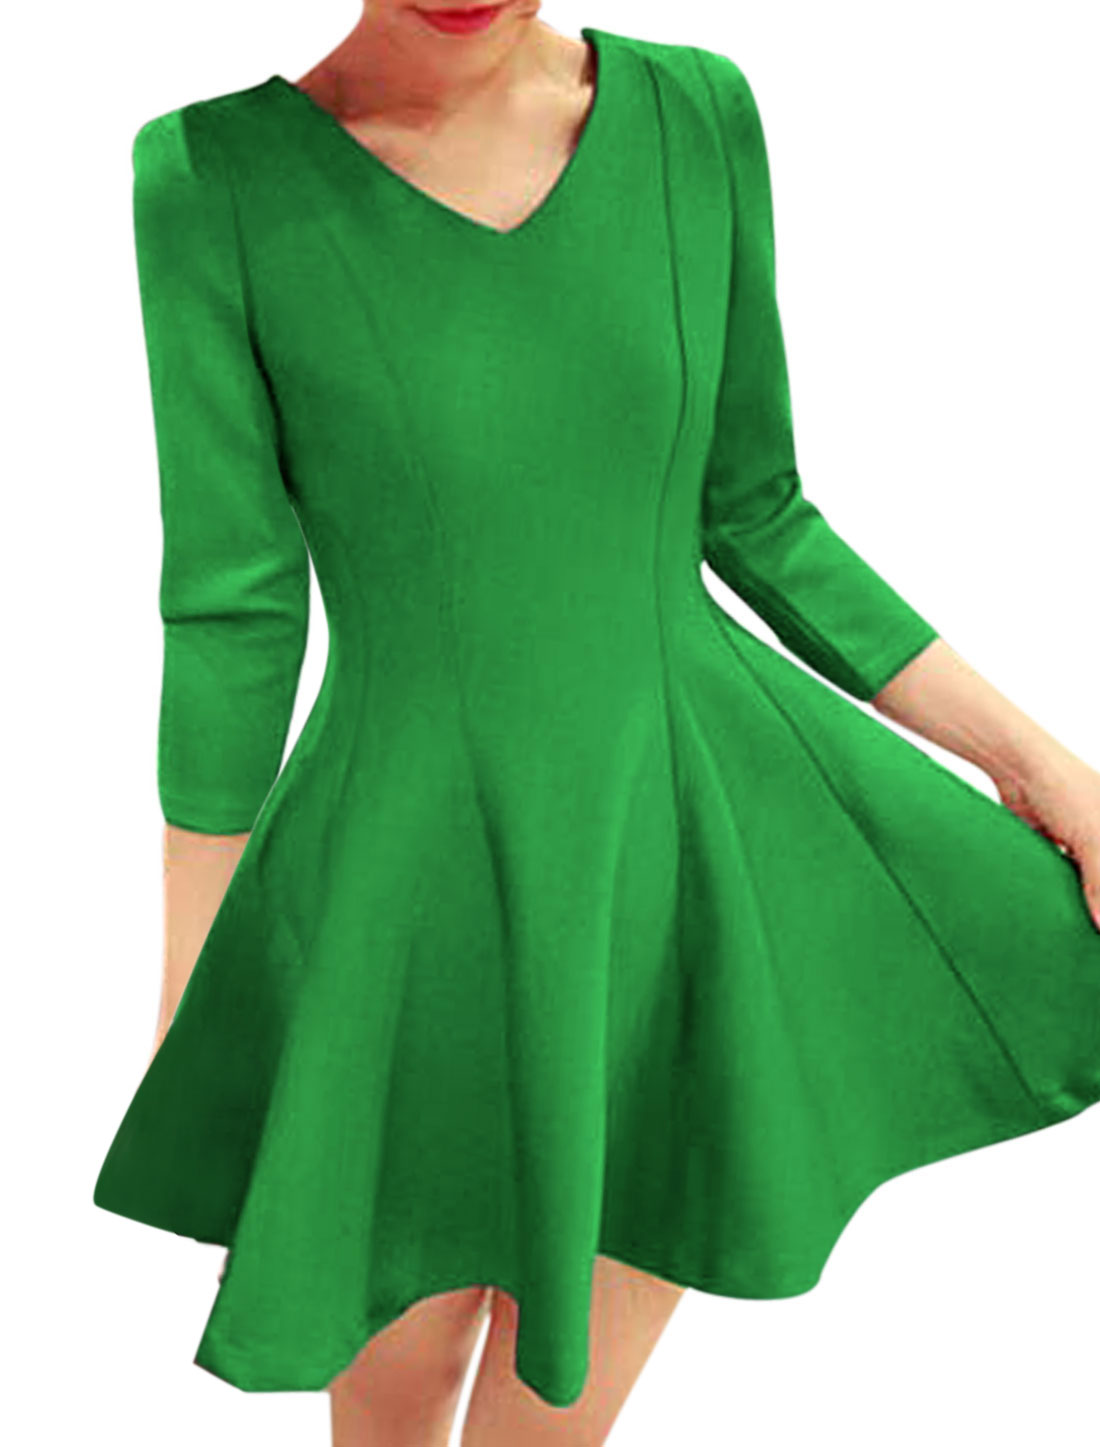 Women Round Neck Fit and Flare Leisure Skater Dress Green S